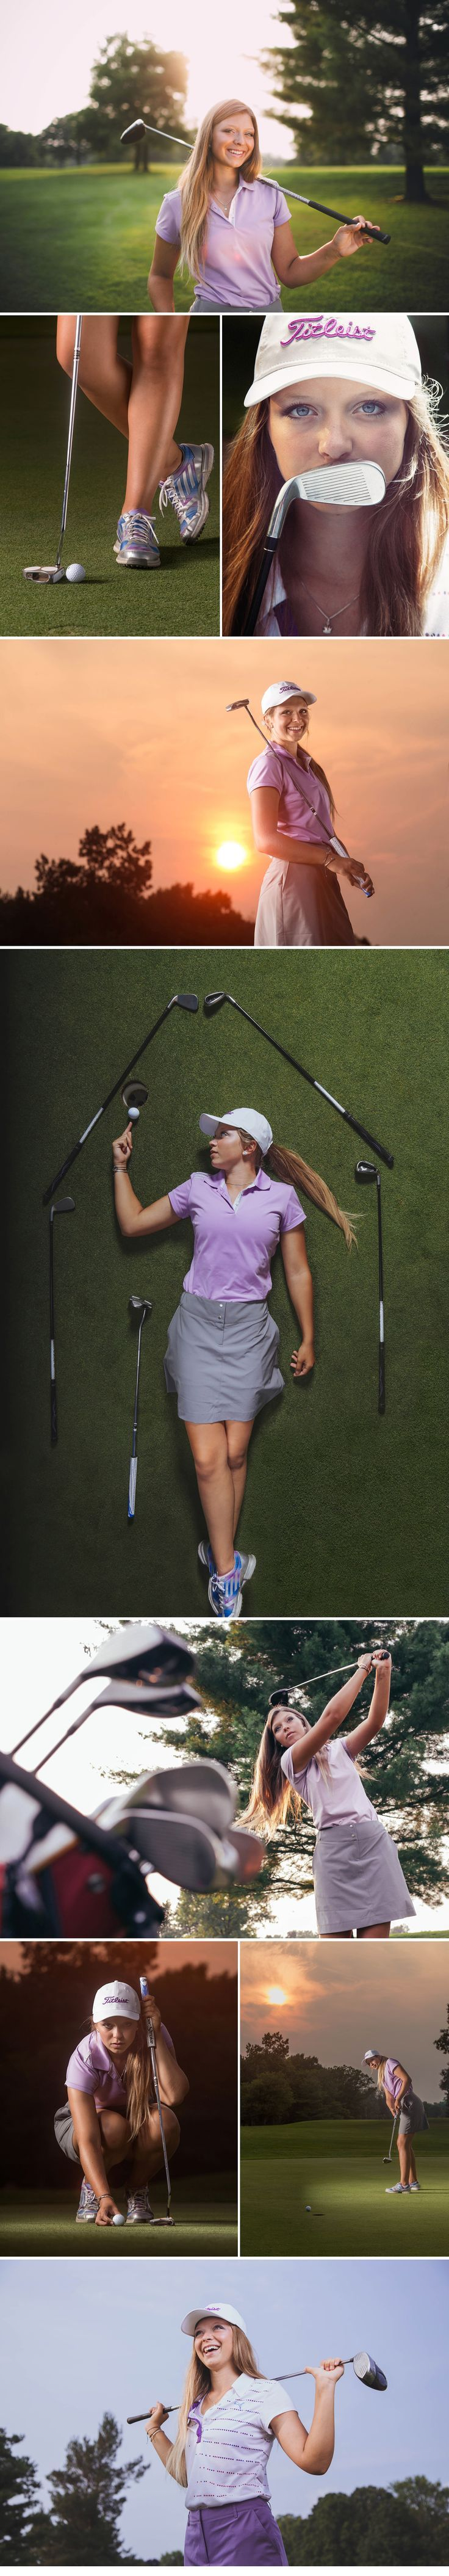 Golf senior photo session ideas for girls. #golf #photography Find more golf ideas, quotes, and tips at #lorisgolfshoppe